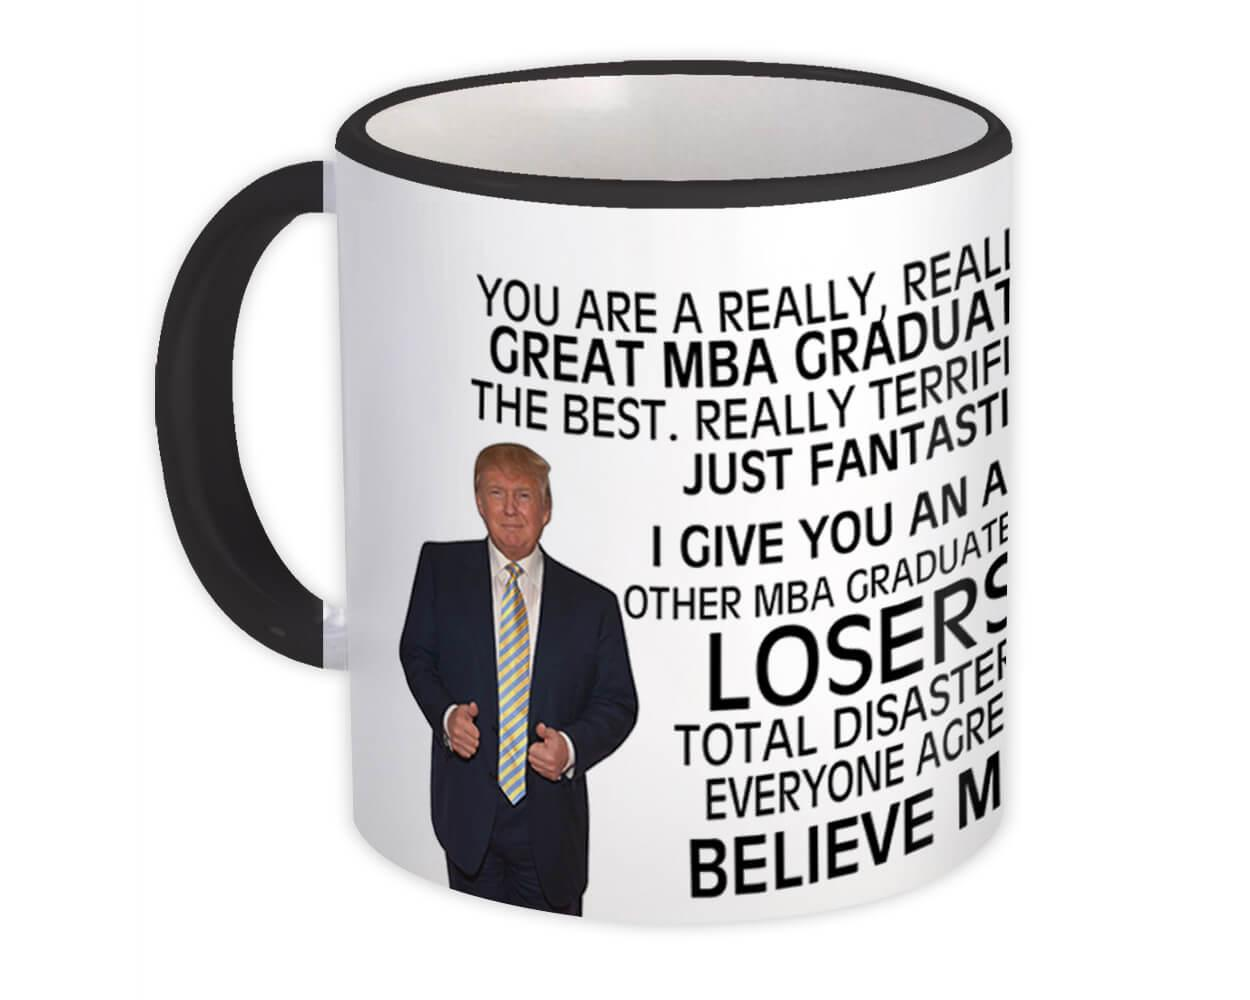 Gift for MBA GRADUATE : Gift Mugs Great MBA Graduate College Friend Family